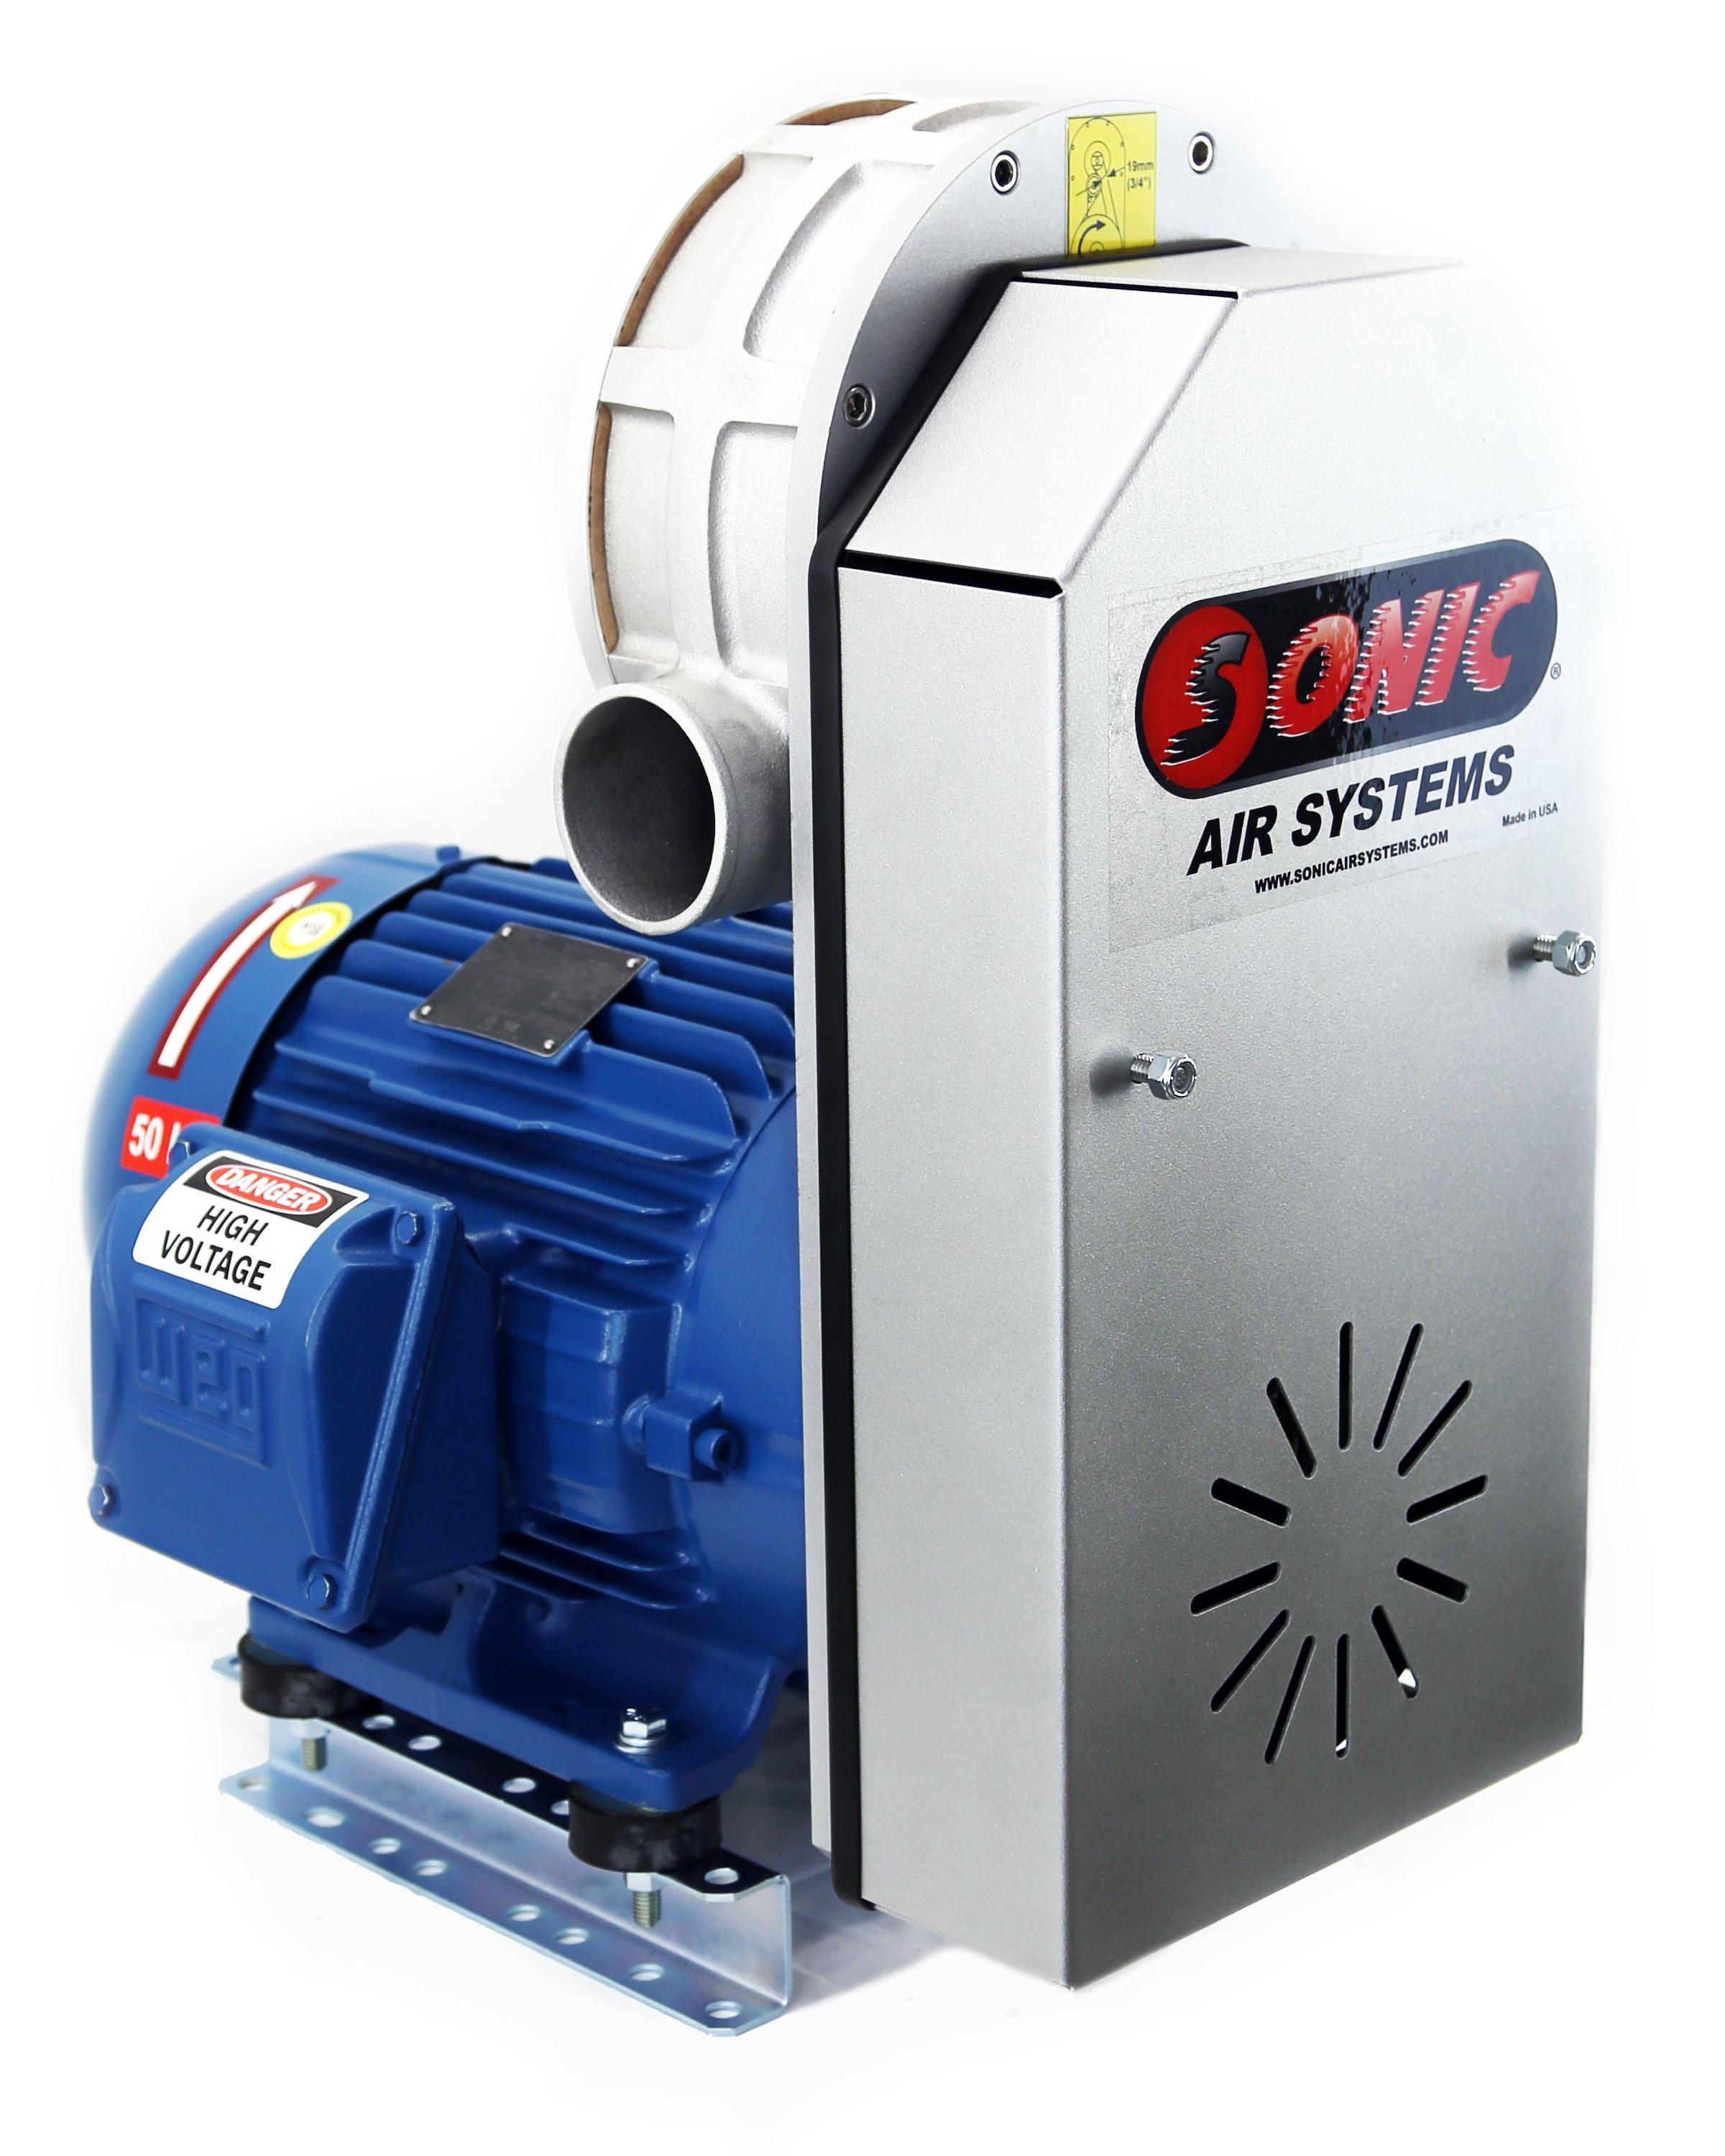 Centrifugal Blower 150 : Sonic air centrifugal blowers industrial